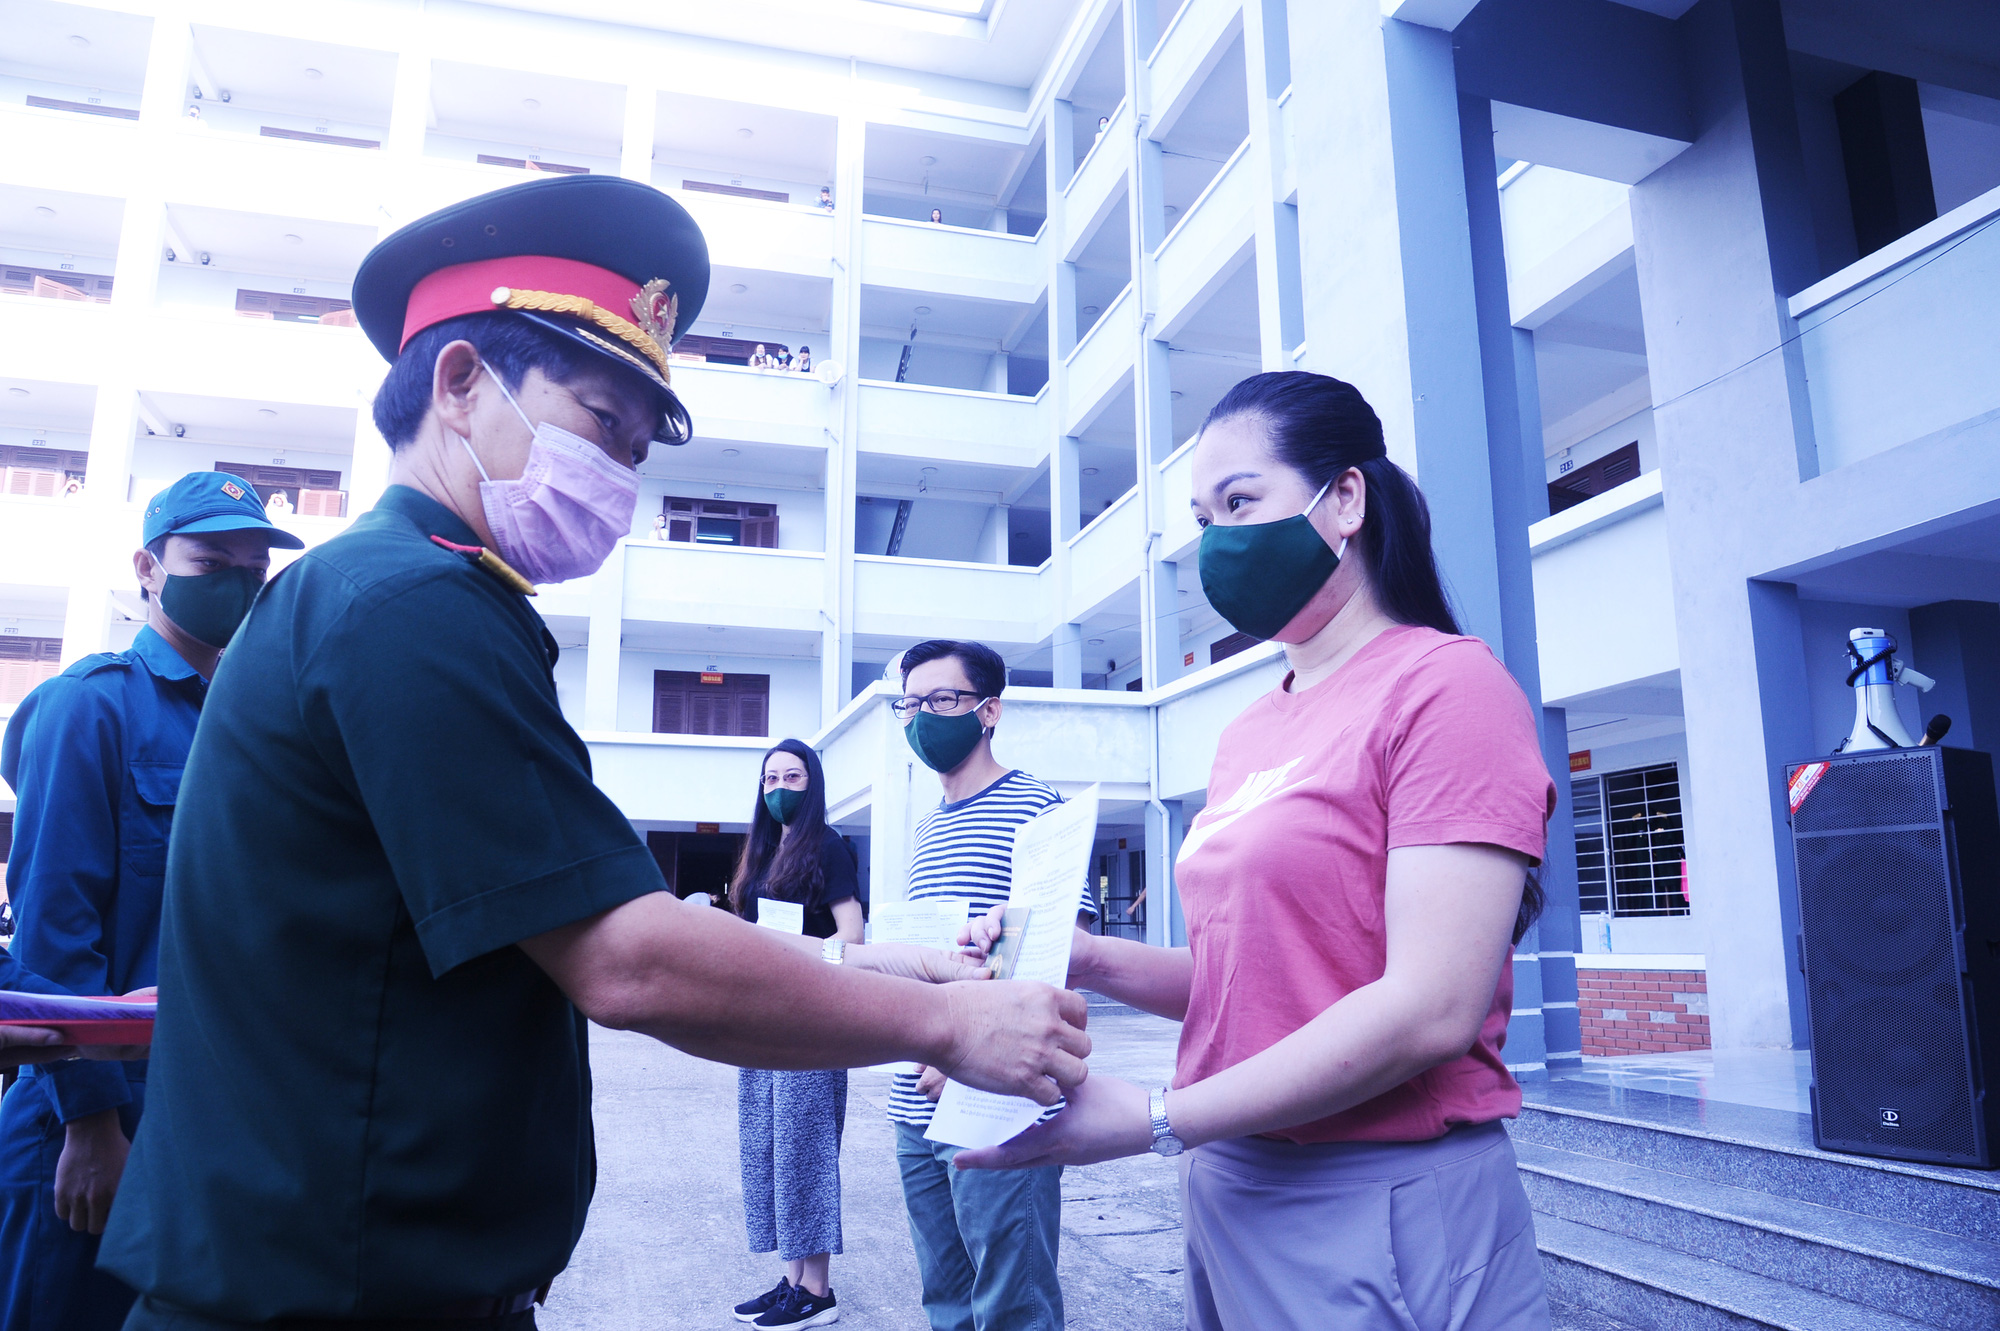 Col. Nguyen Huu Nghia (left) from Quang Nam Province's Military Command hands out all-clear certificates to residents at a novel coronavirus disease (COVID-19) quarantine facility in Quang Nam Province, Vietnam, June 12, 2020. Photo: Le Trung / Tuoi Tre